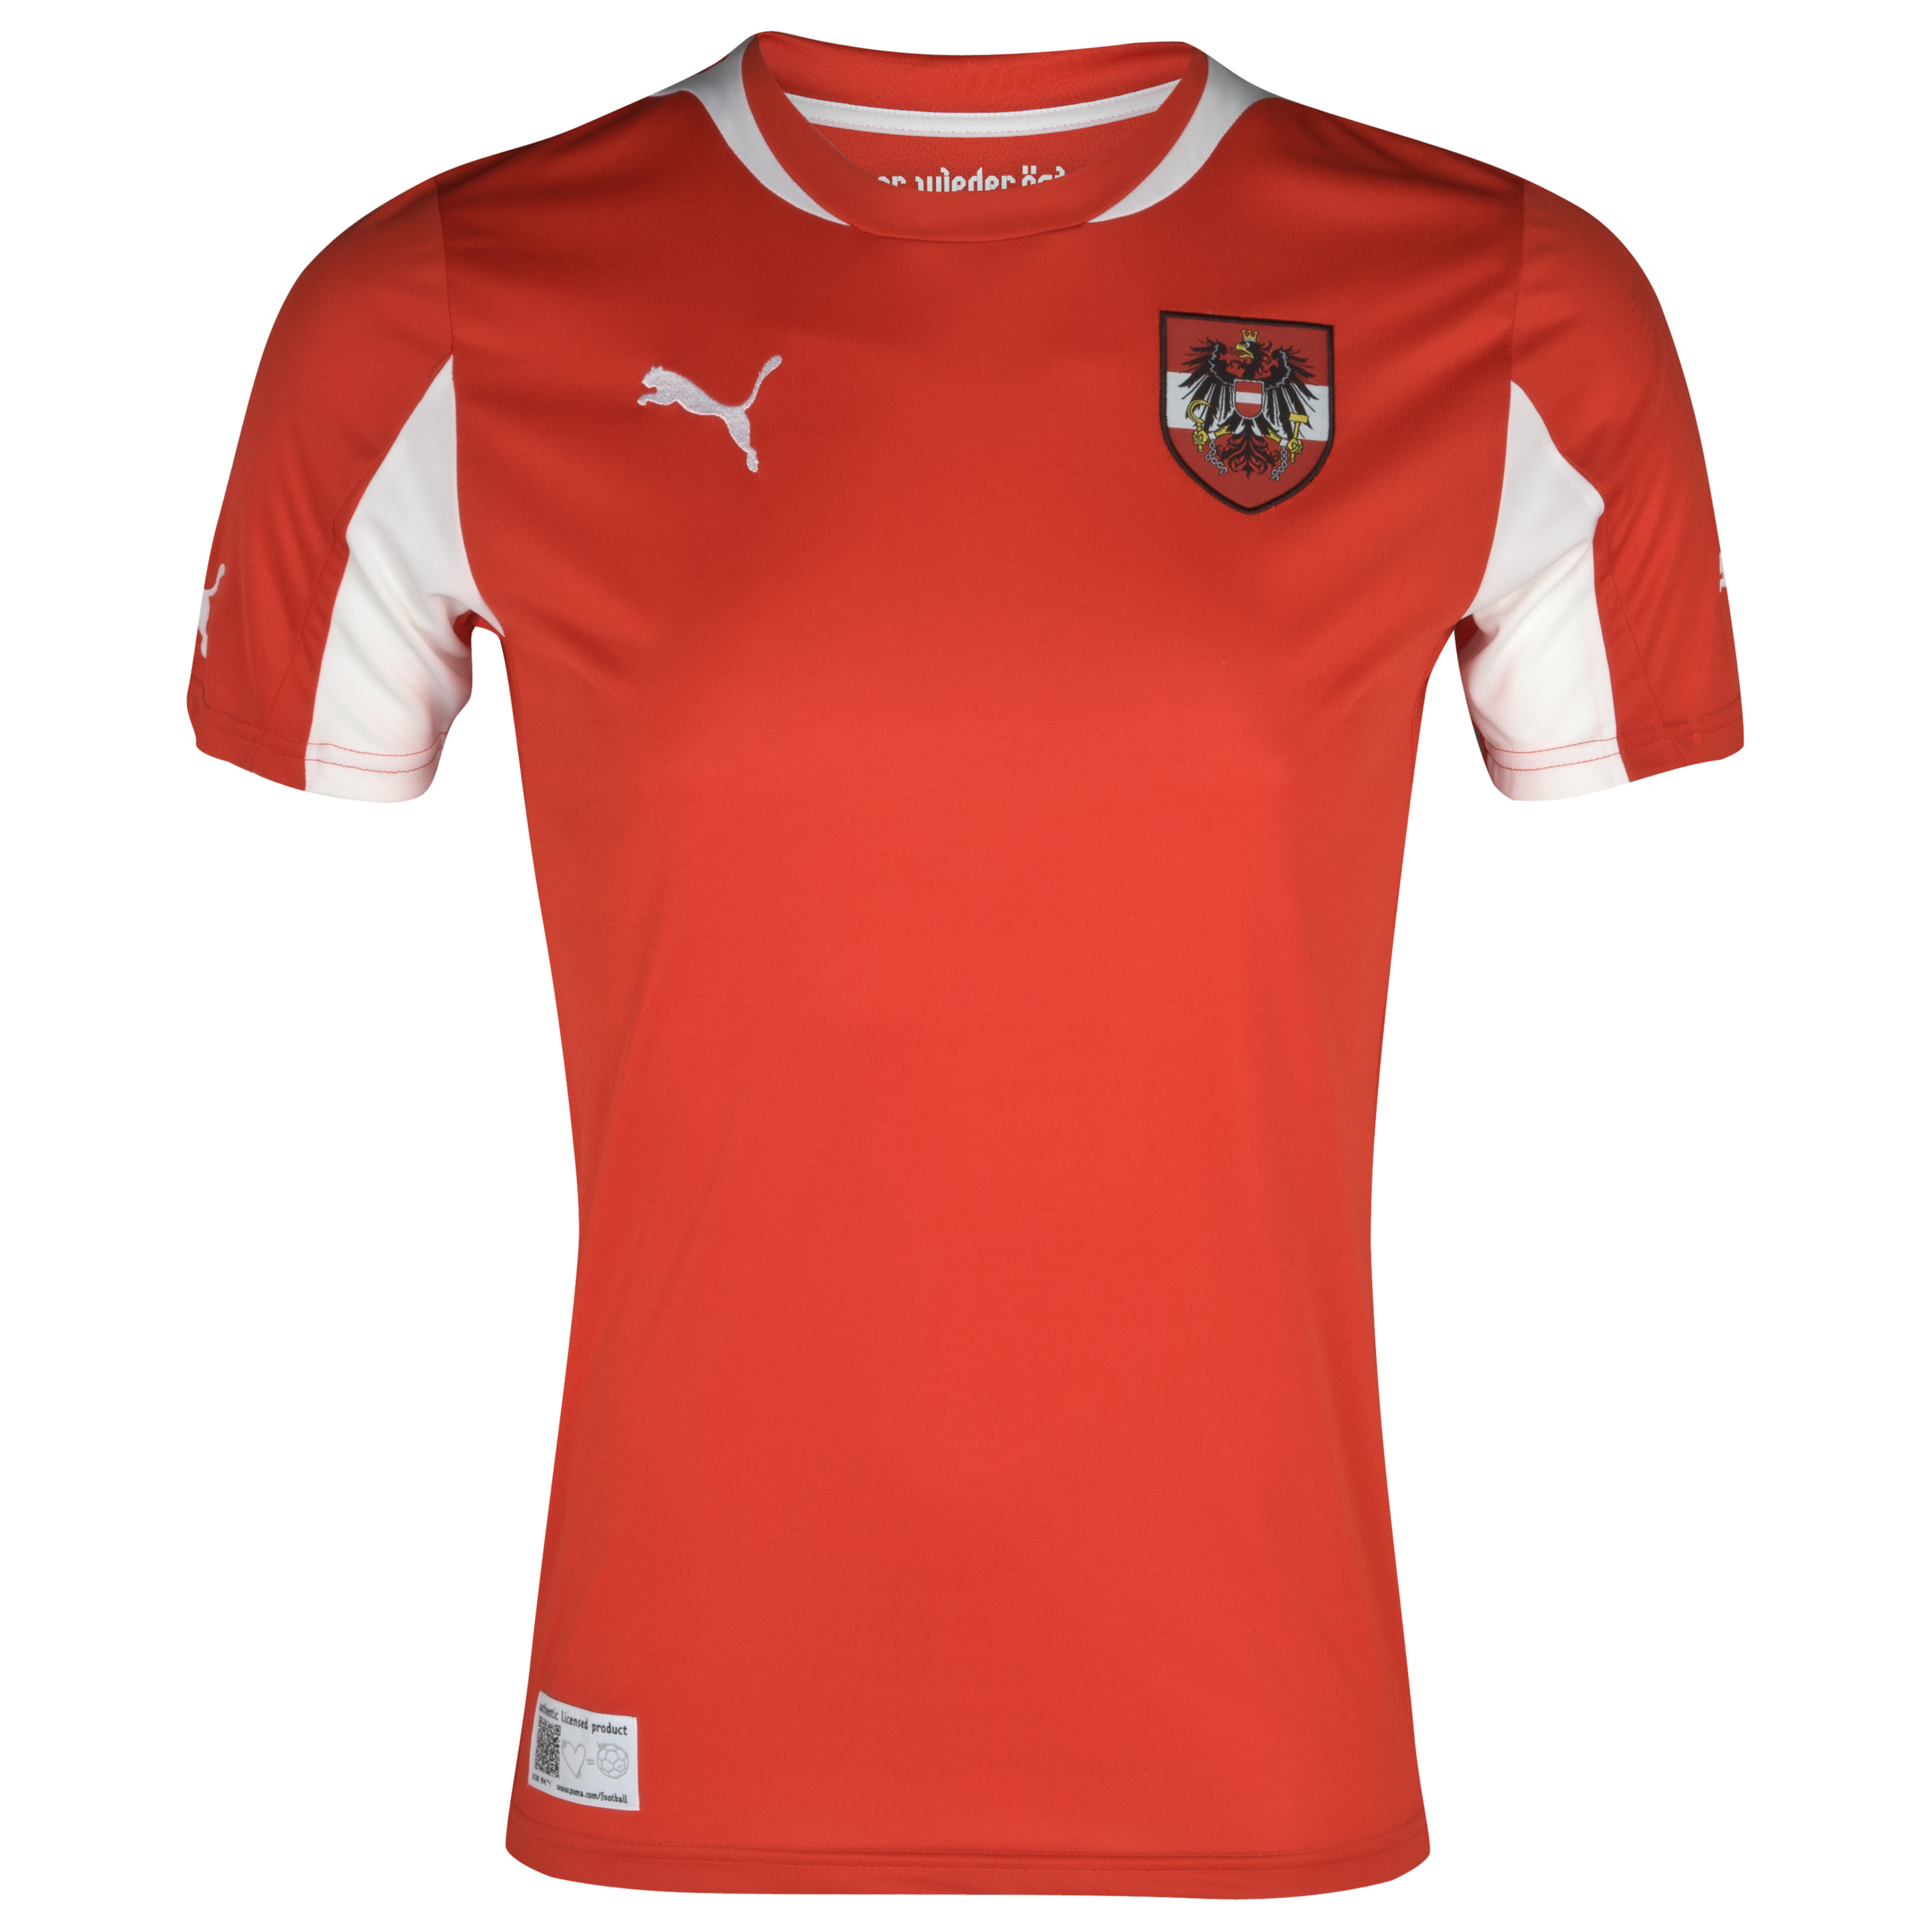 Austria Home Shirt Replica - Puma Red/White